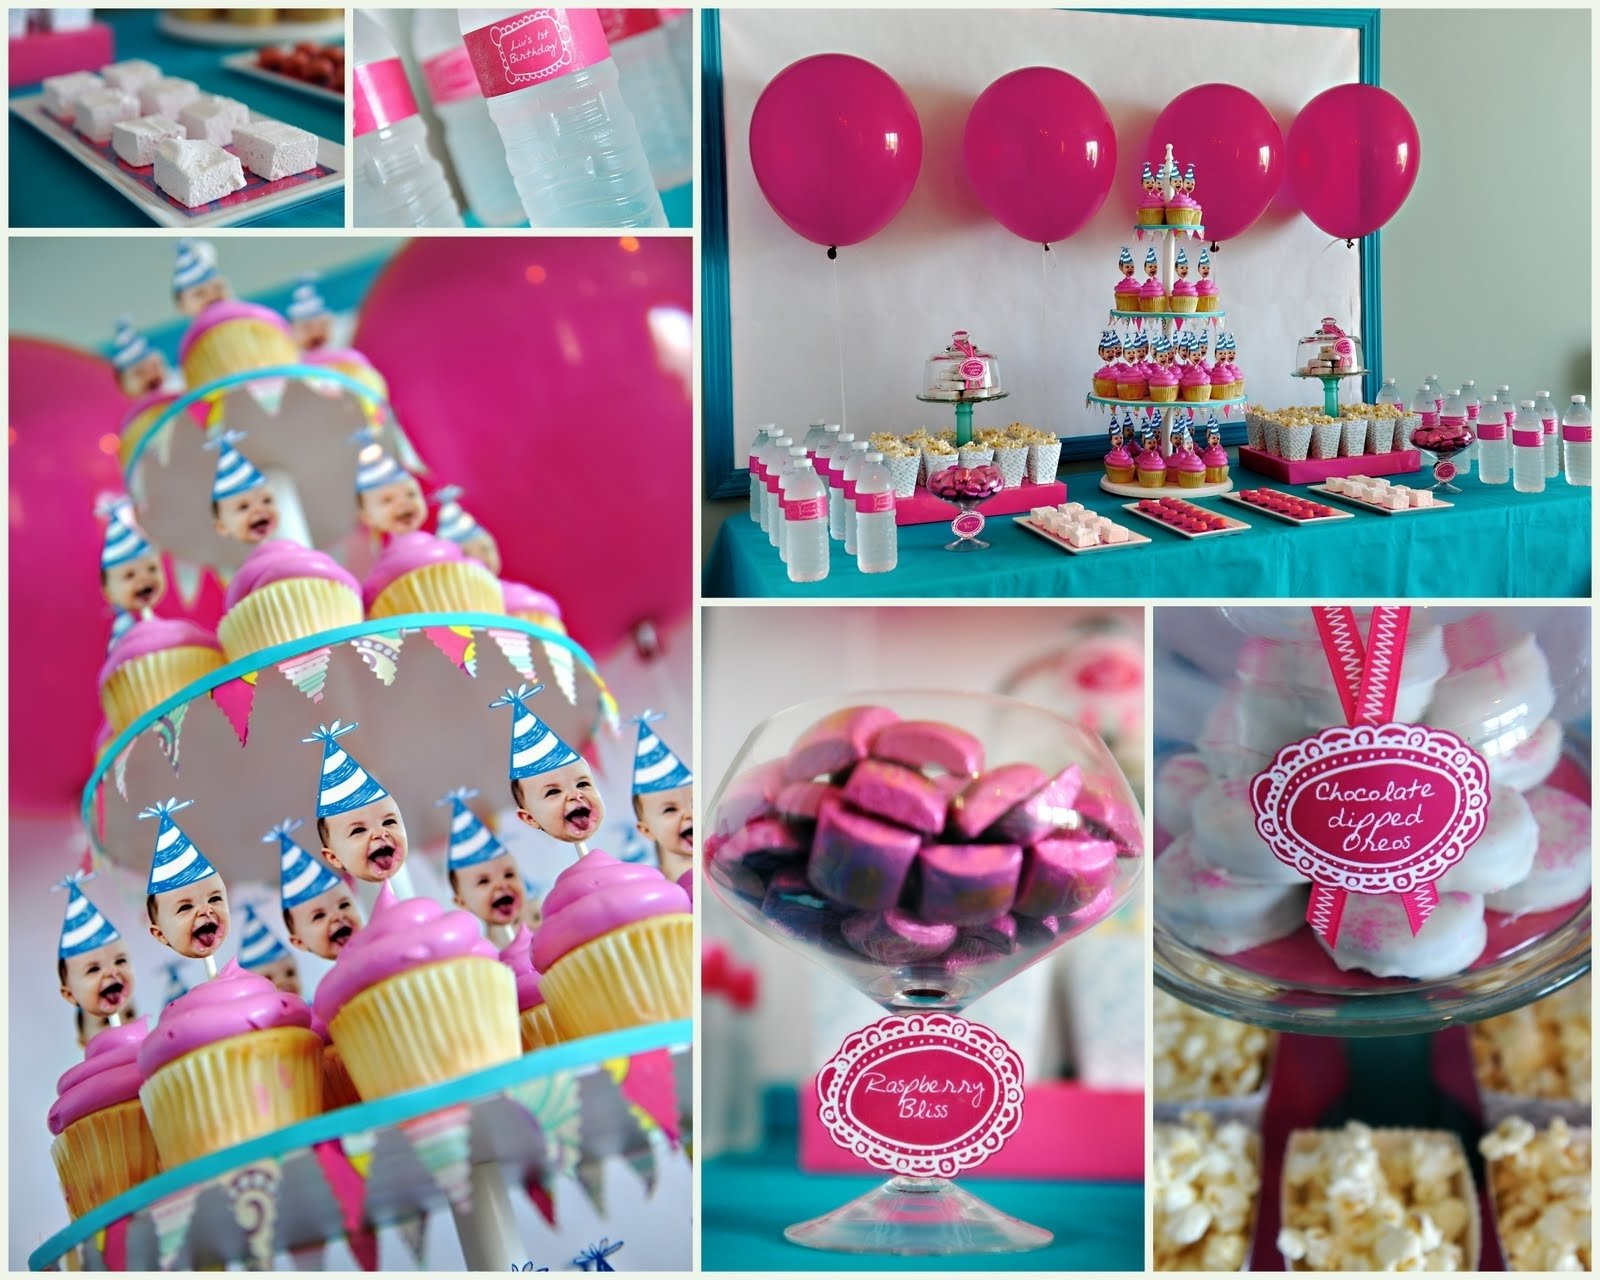 10 Lovely Baby 1St Birthday Party Ideas birthday party ideas with balloon and cupcake lets party 4